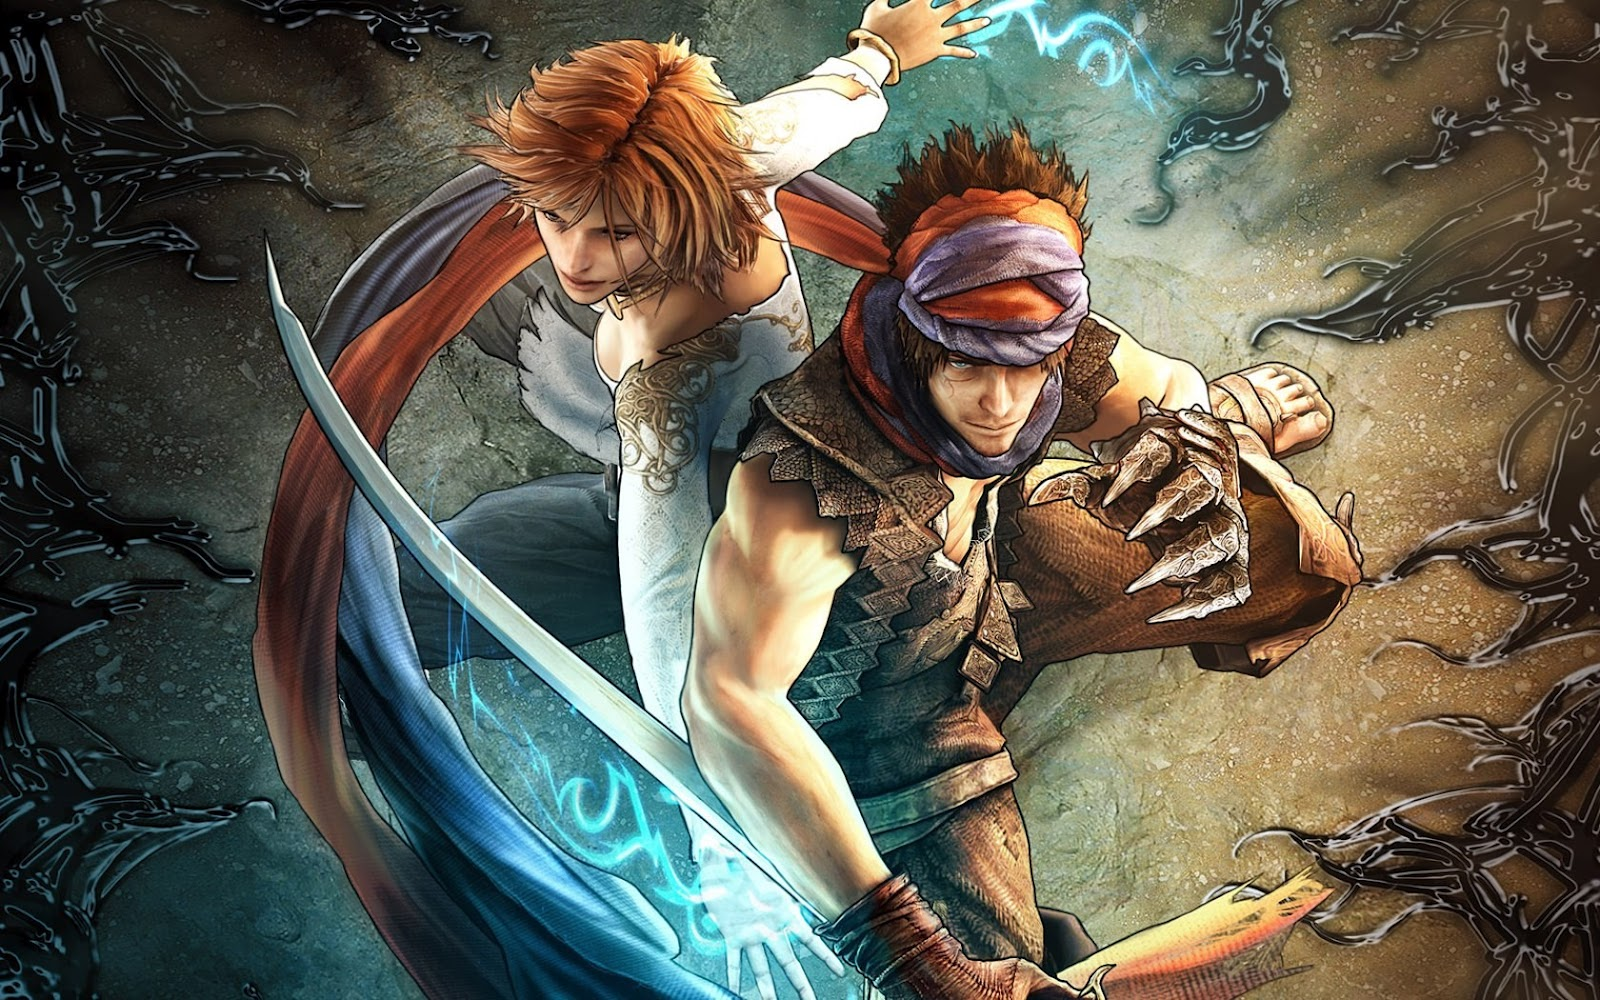 Hd wallpapers hd wallpapers prince of persia 1680x1050 - Prince wallpaper ...